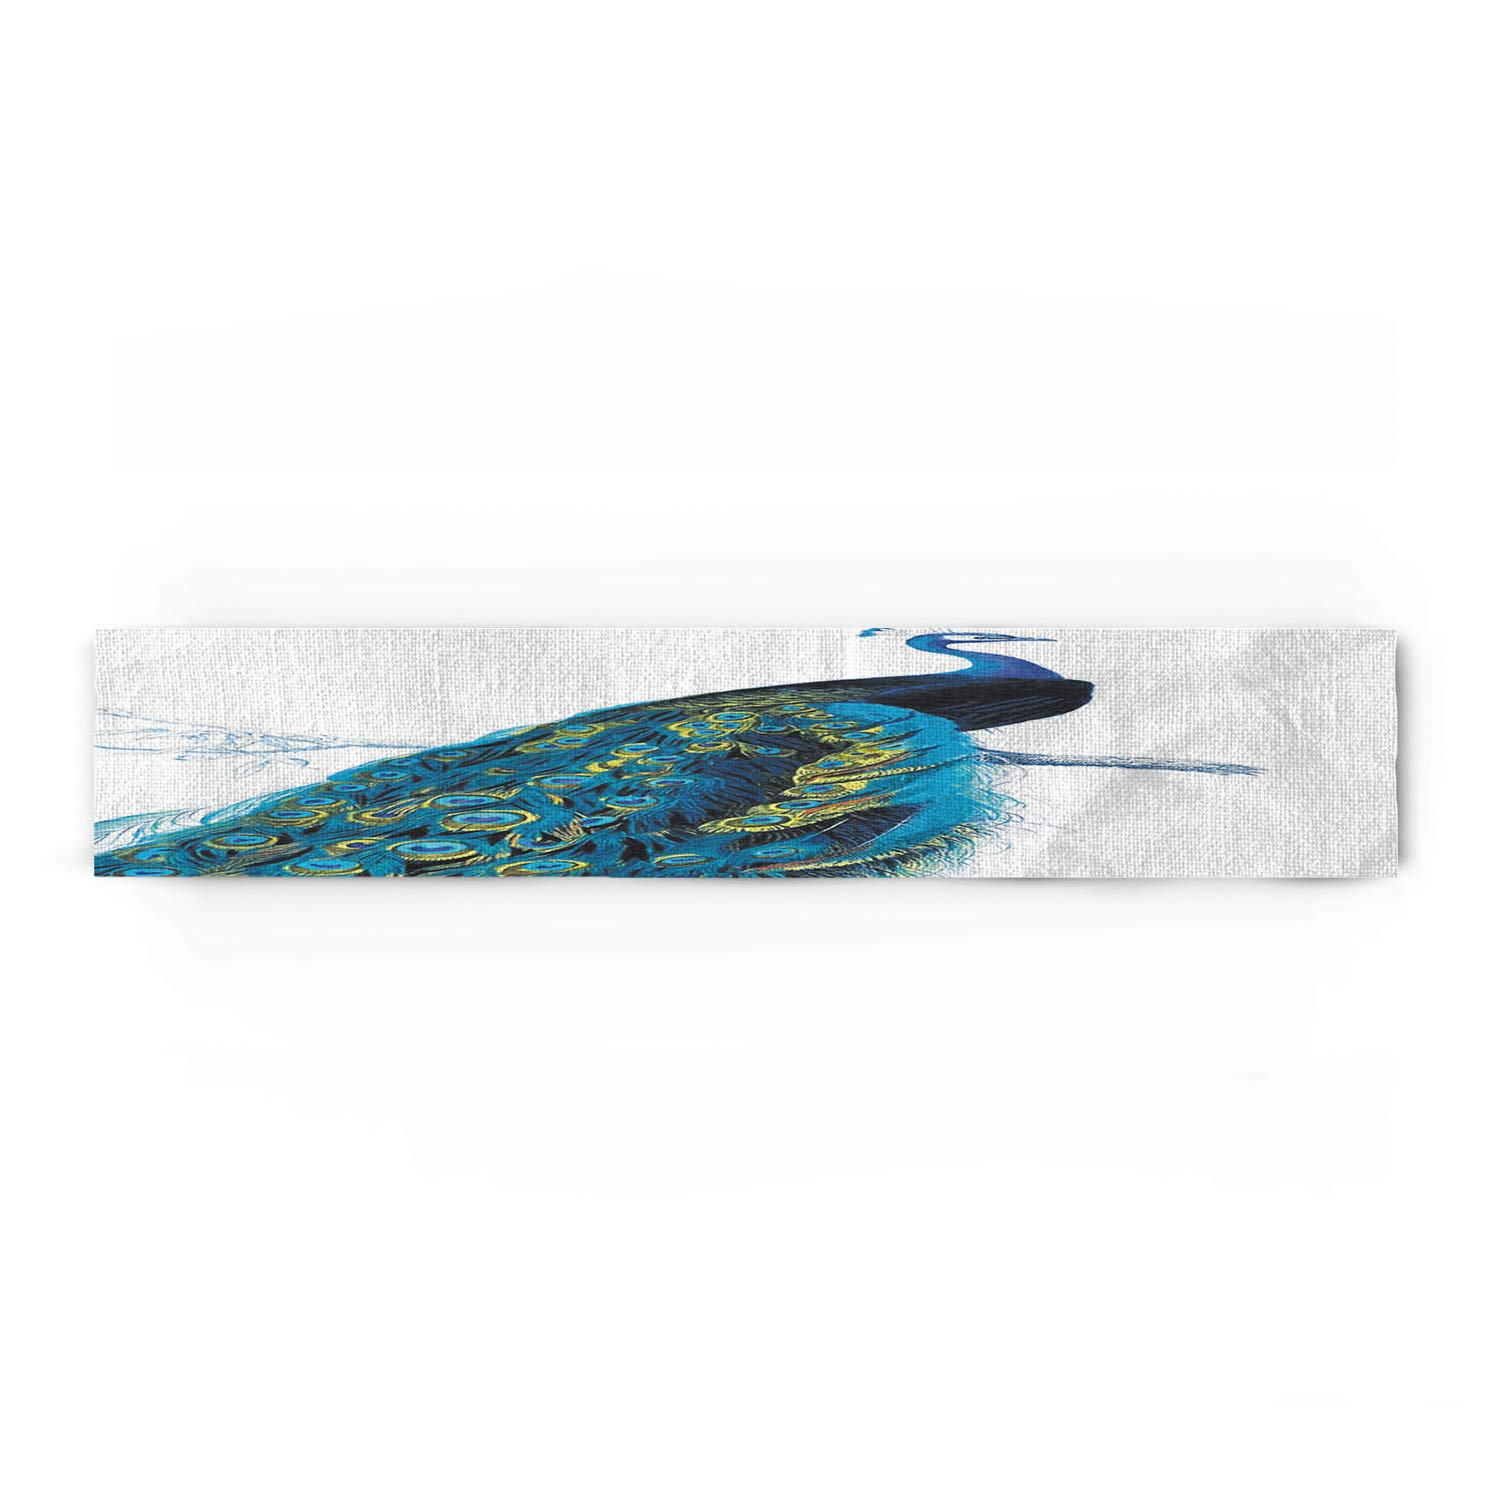 WAZZIT Peacock Cotton Table Runner - Perfect for Summer Holiday Parties and Everyday Use 16x72inch, Peacock Stand on Branch Wildlife Animals